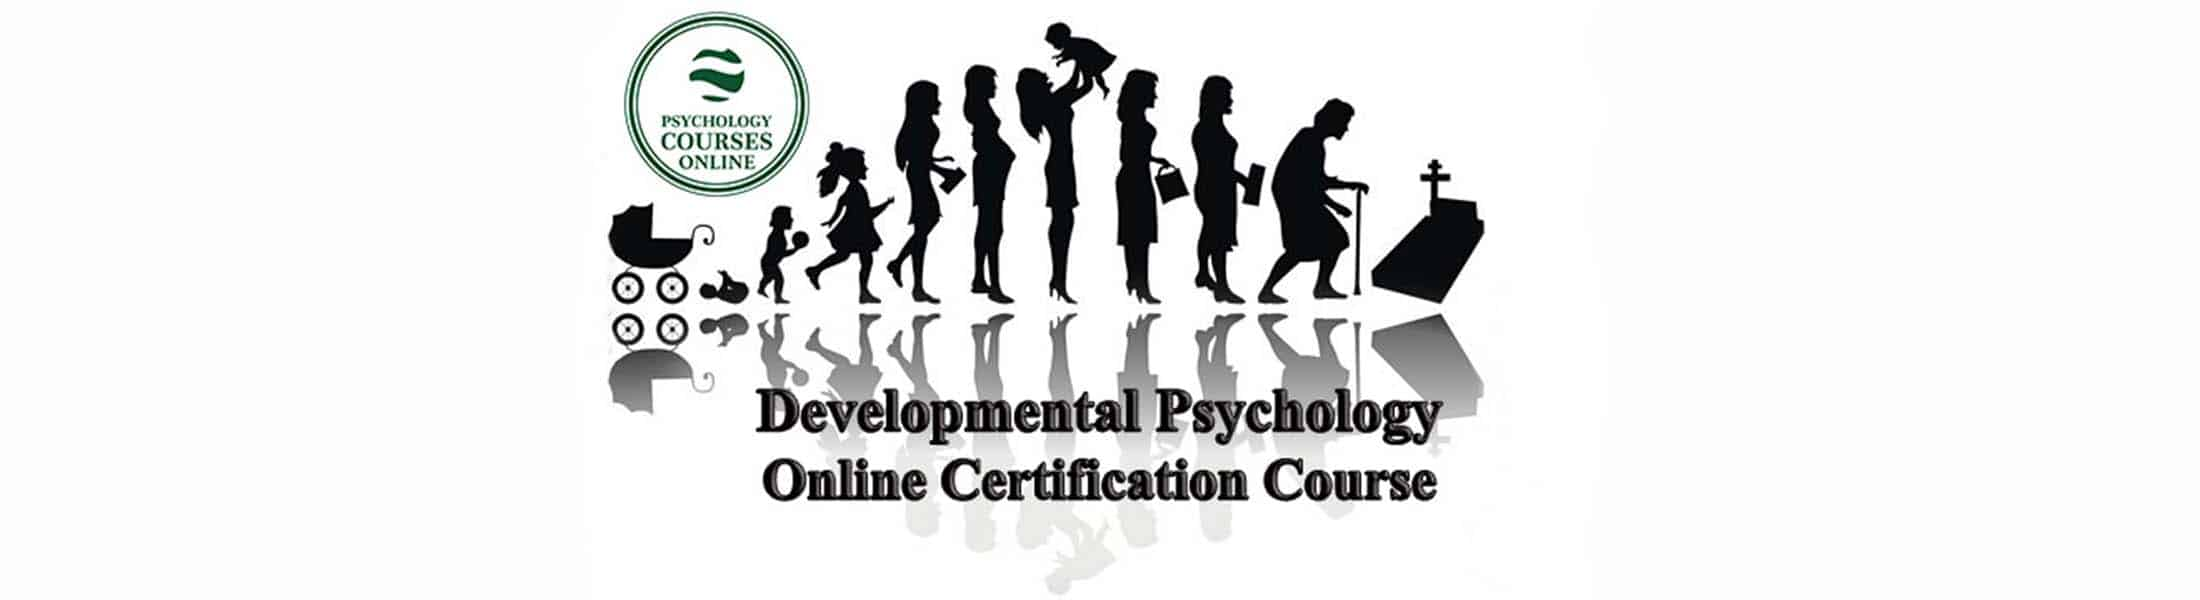 Developmental Psychology Online Certification Course